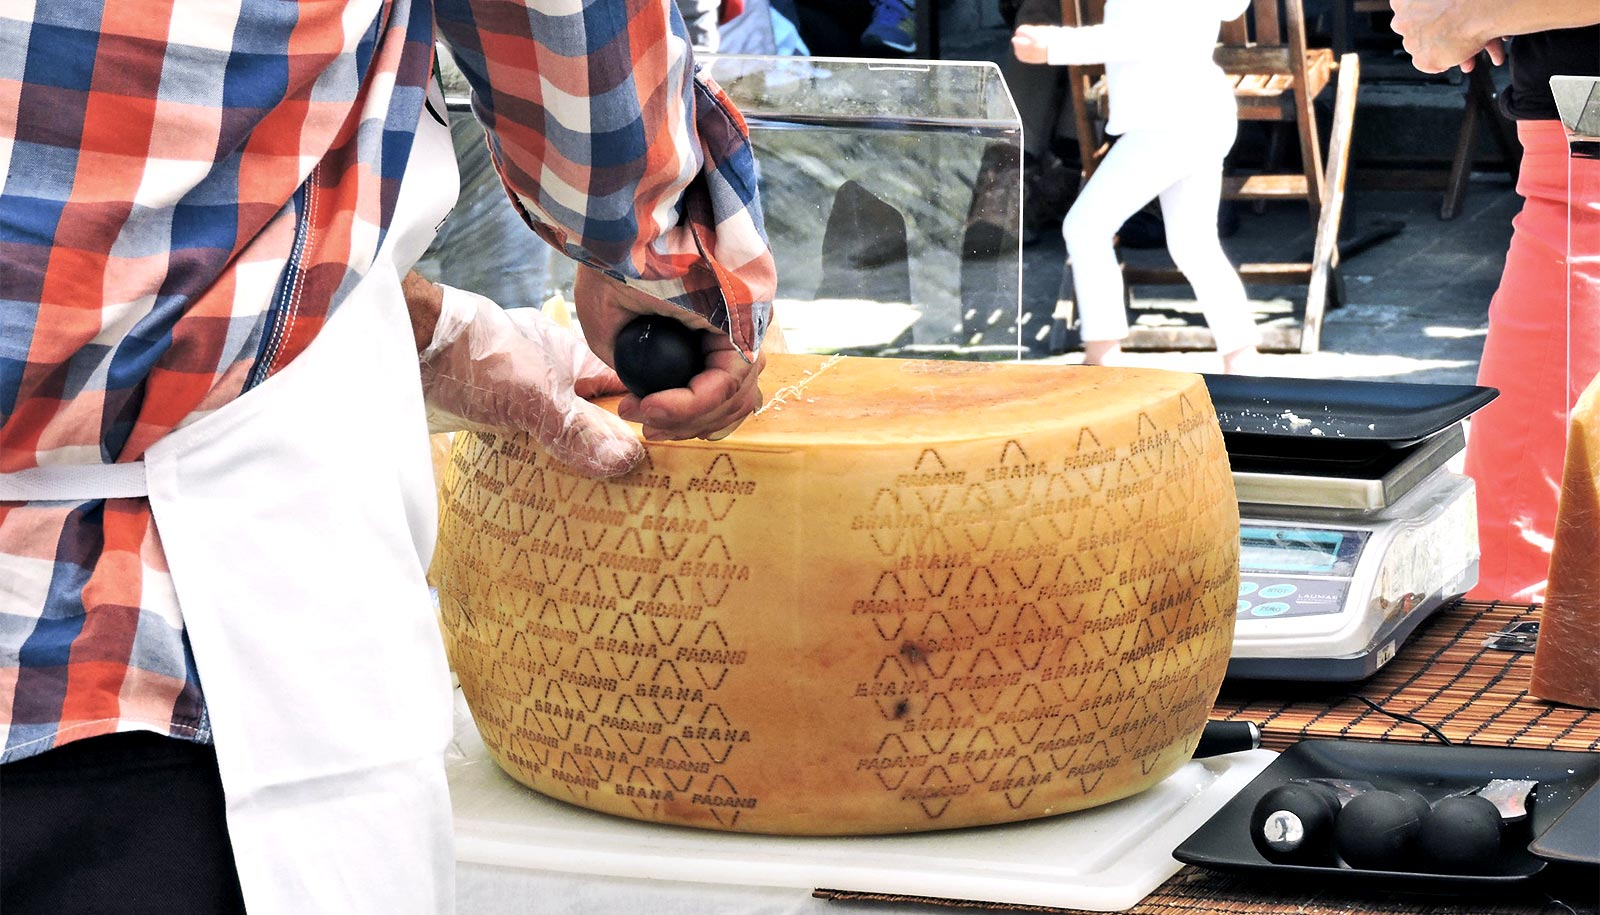 Rind bacteria may be key to cheese allergy relief